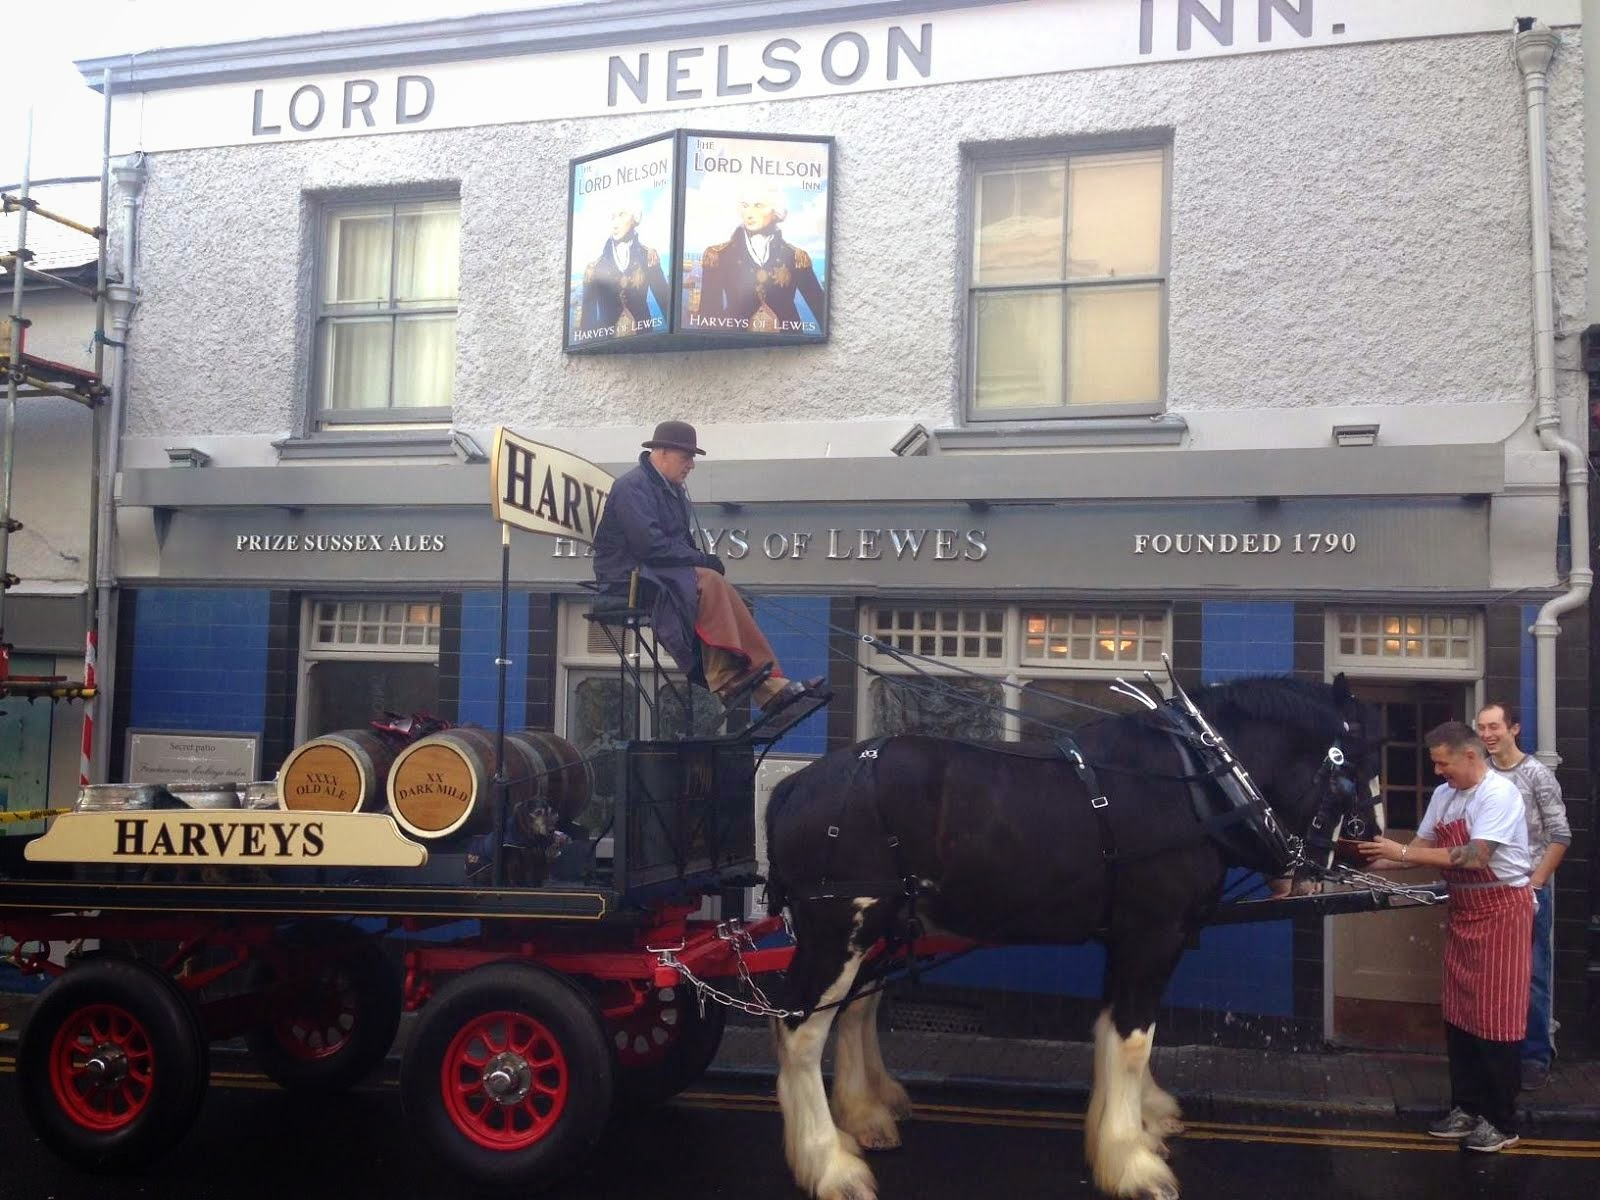 Real Ale delivery!